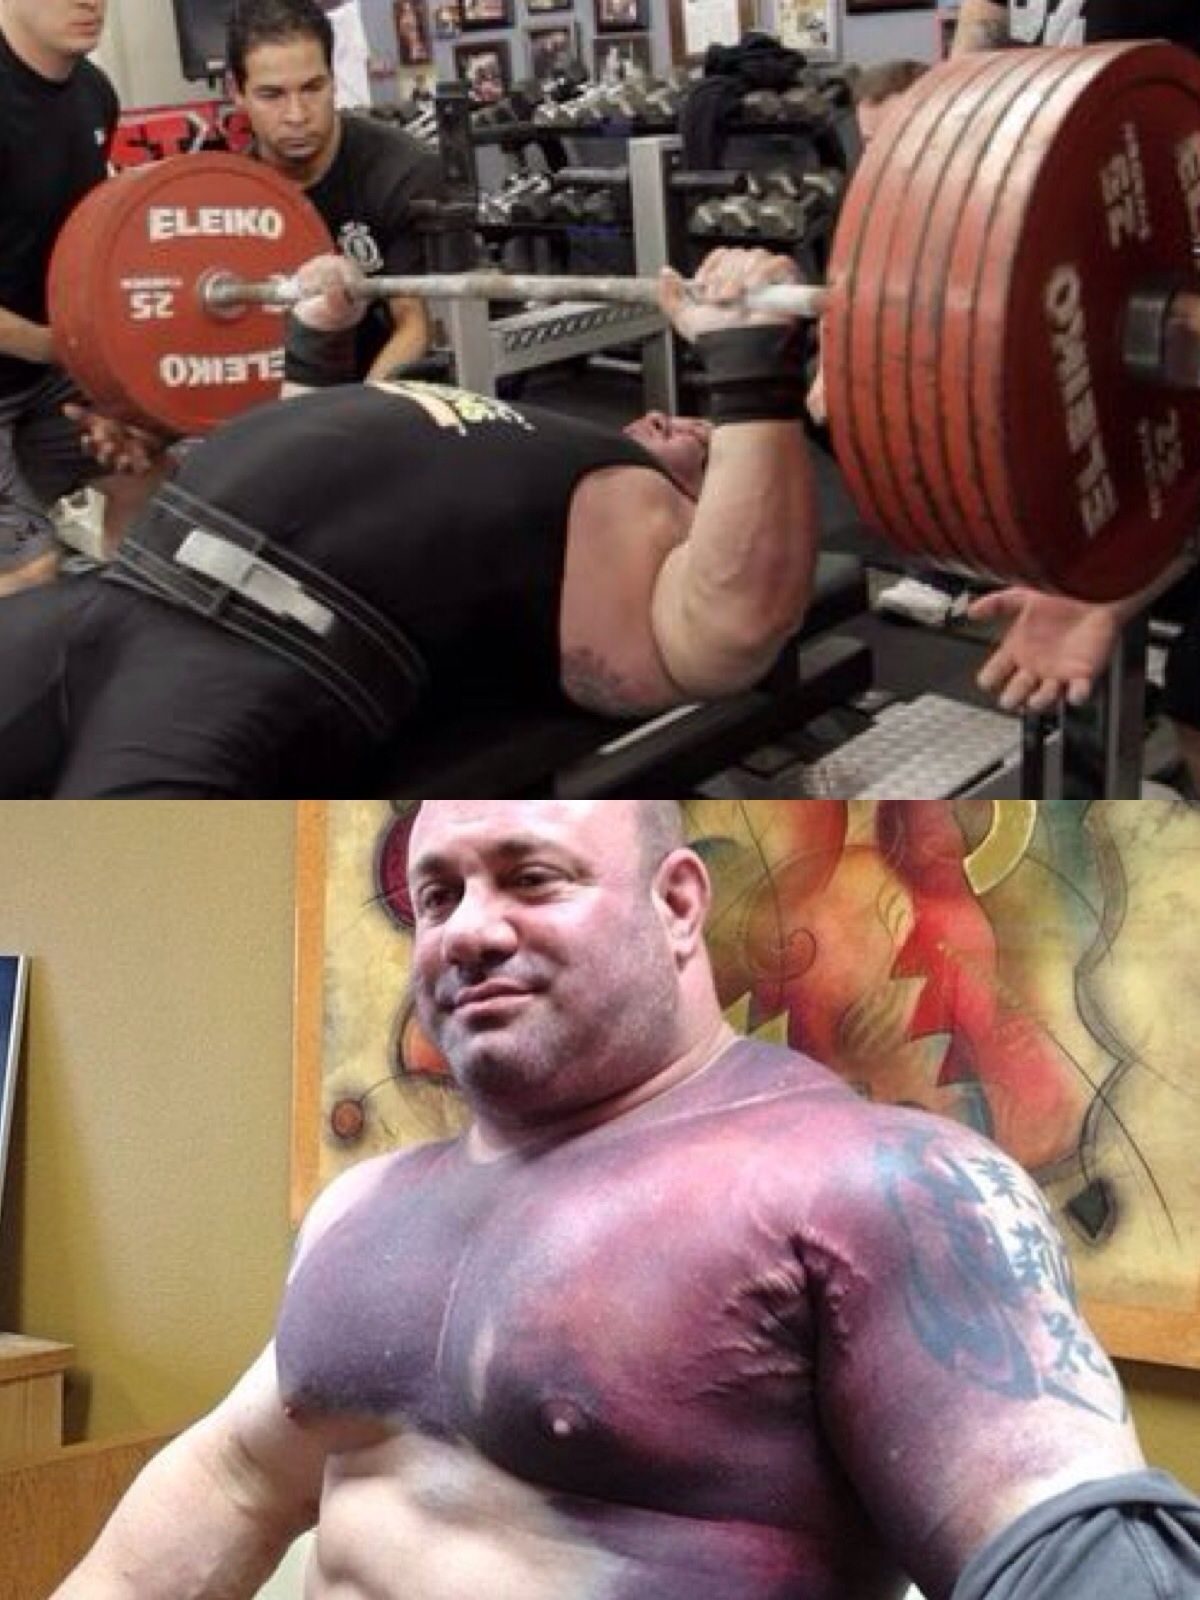 Scott Mendelson After He Tore His Pec Trying For The World Record Bench Press 716 5 Lb Or 325 Kg Nopainnogain Bench Press Pumping Iron Health Plus